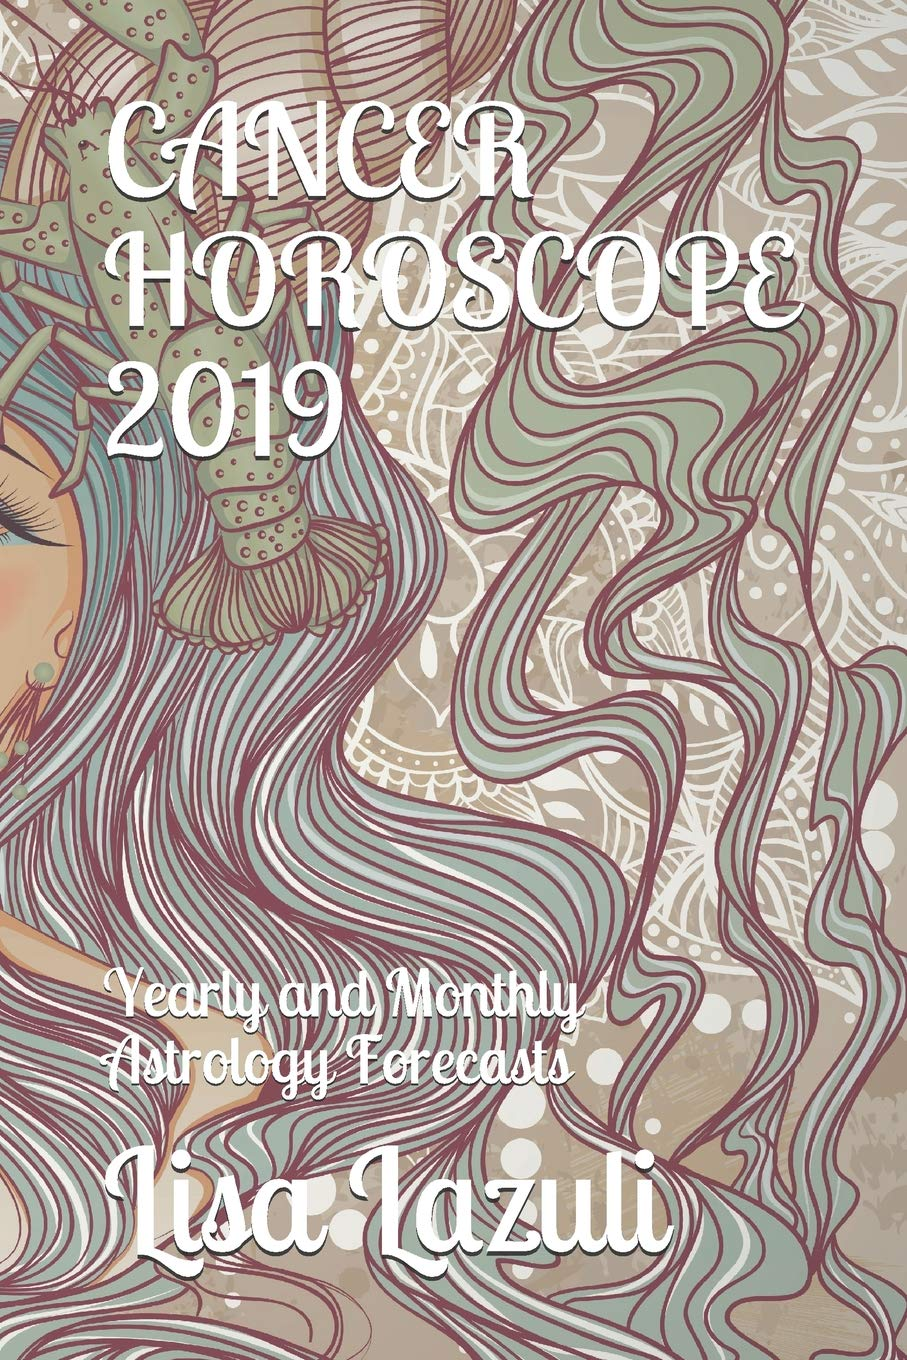 CANCER HOROSCOPE 2019: Yearly and Monthly Astrology Forecasts: Lisa